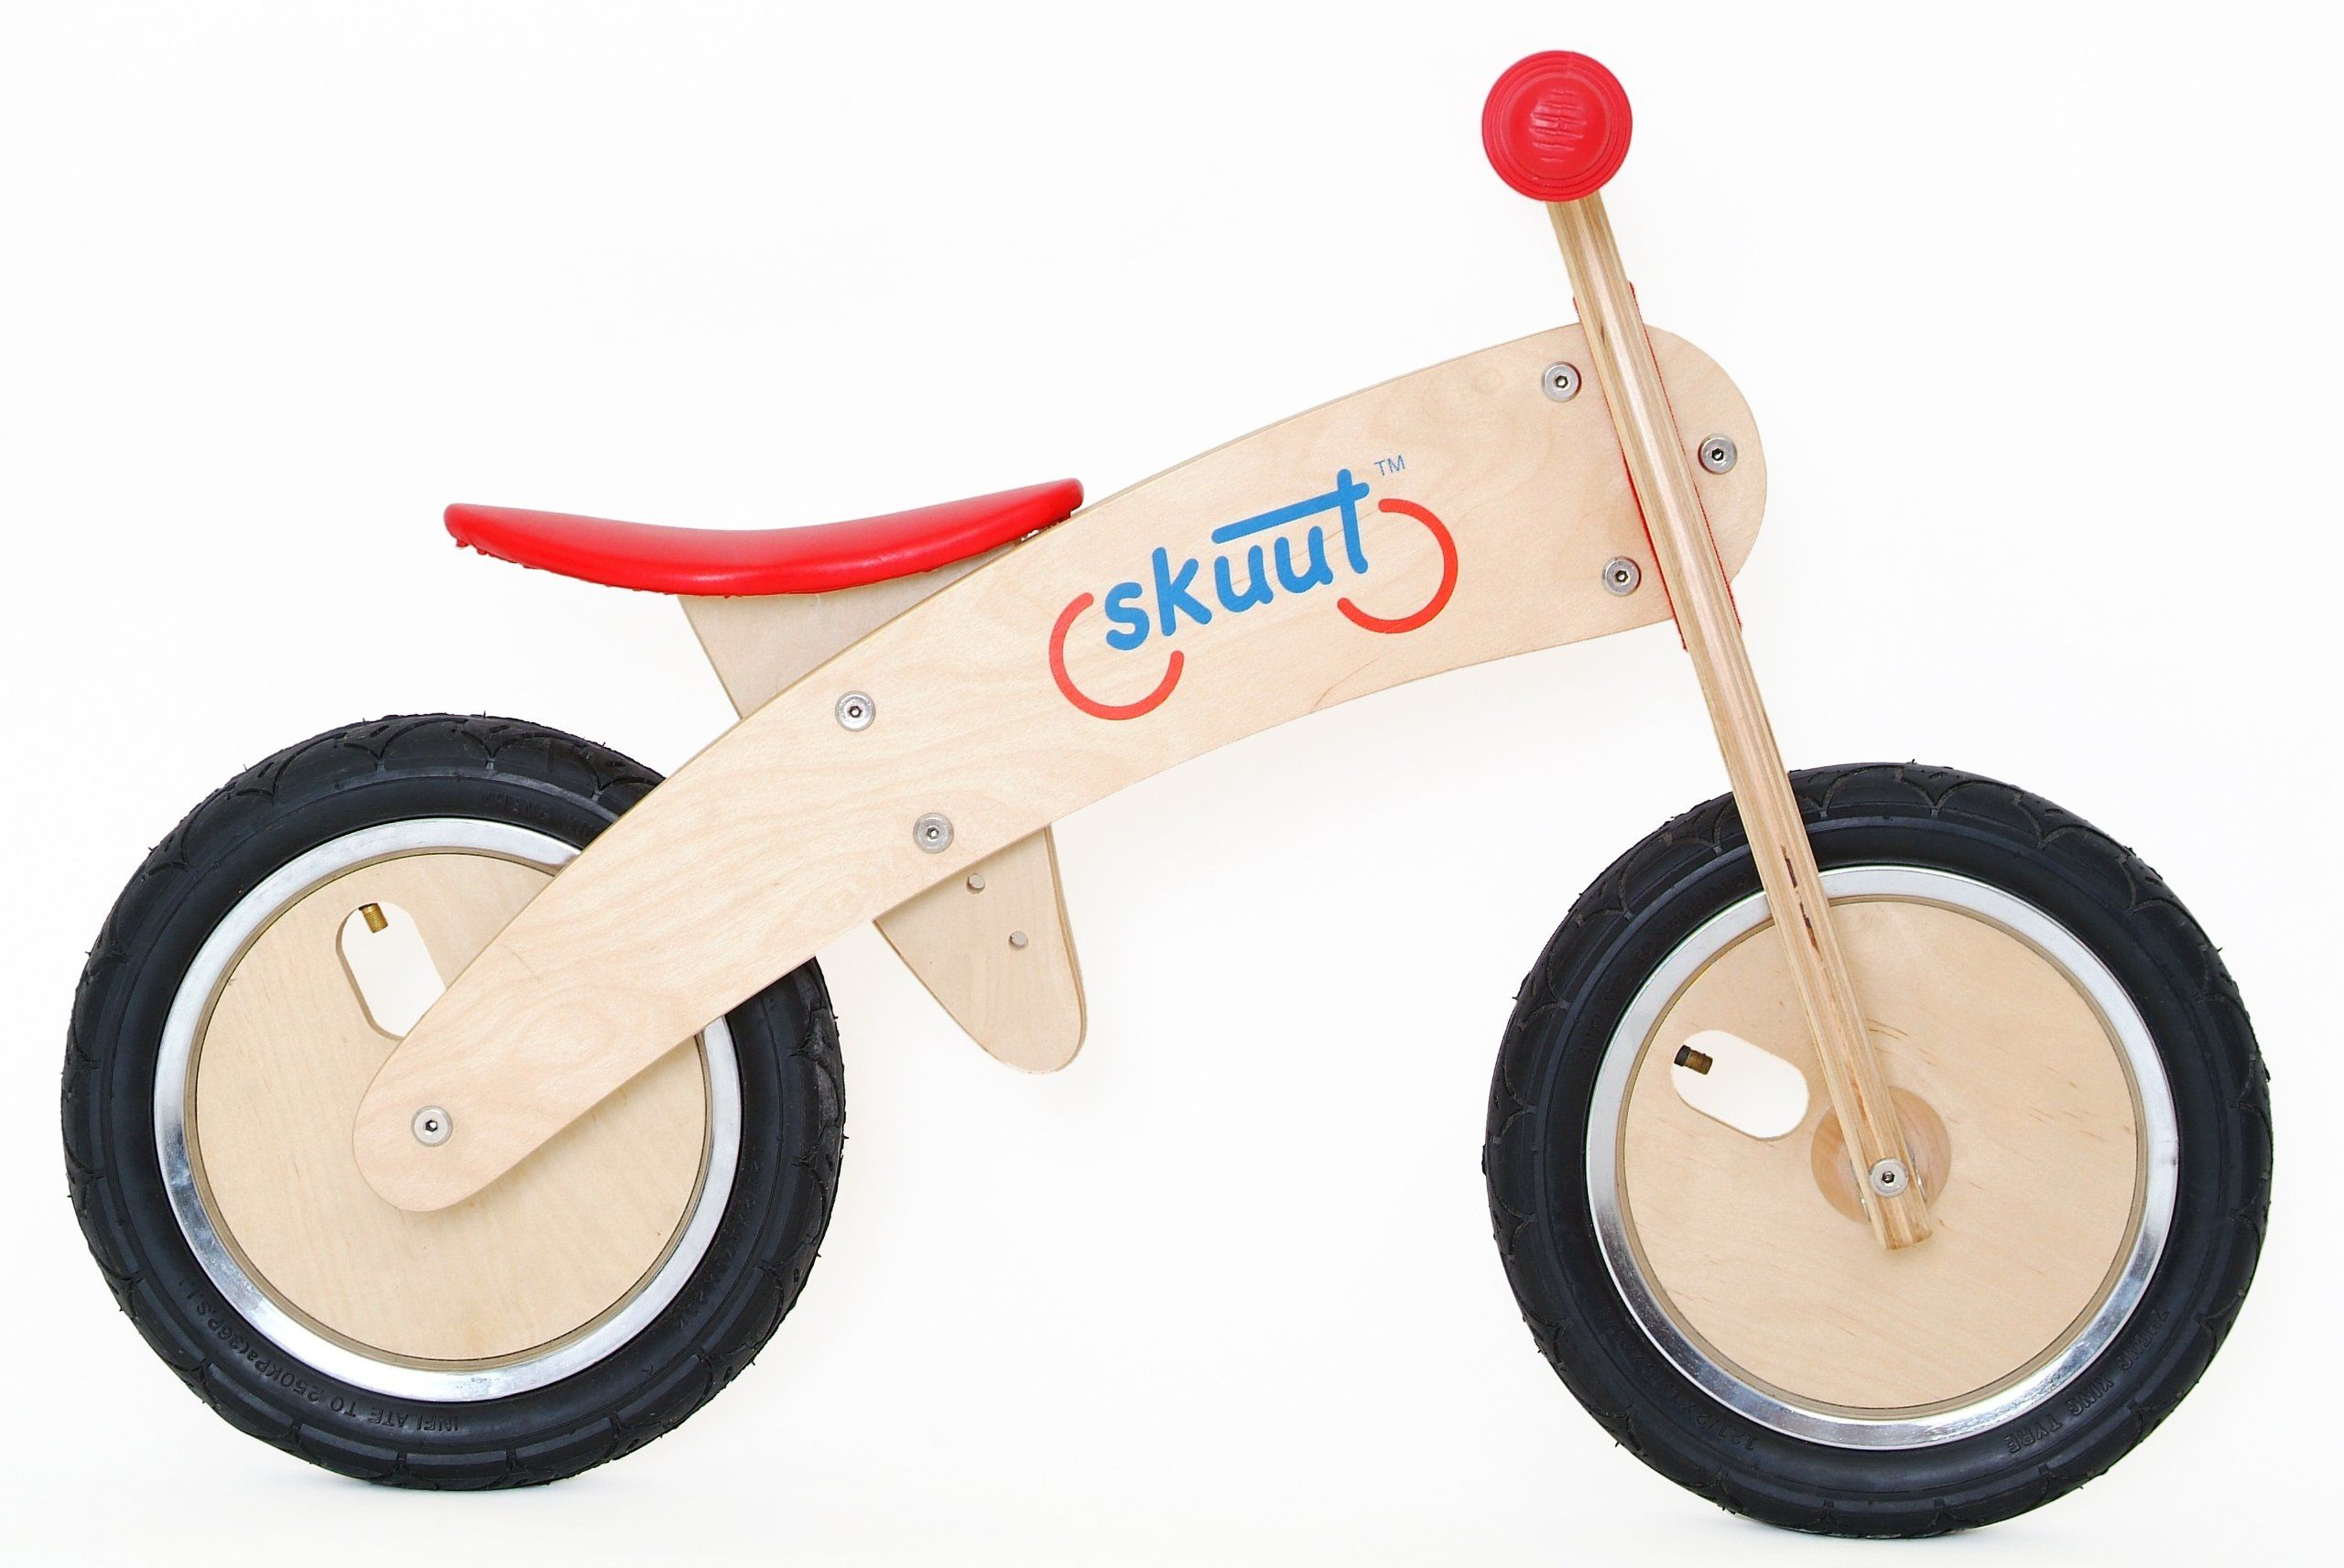 Diggin Active Skuut Wooden Balance Bike Red Balance Bike Kids